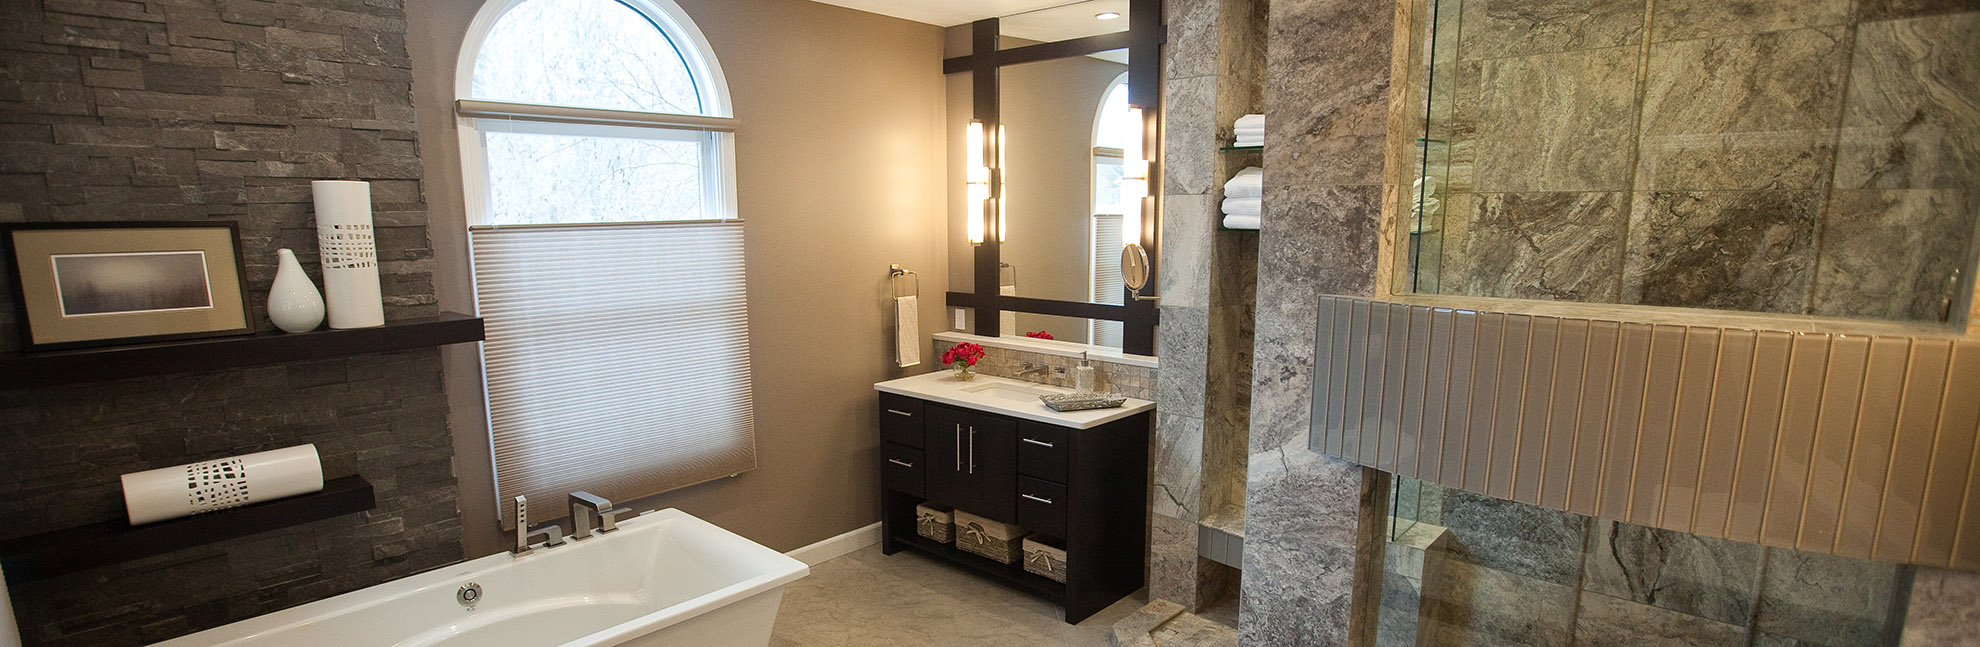 Kitchen and Bath Remodel Products